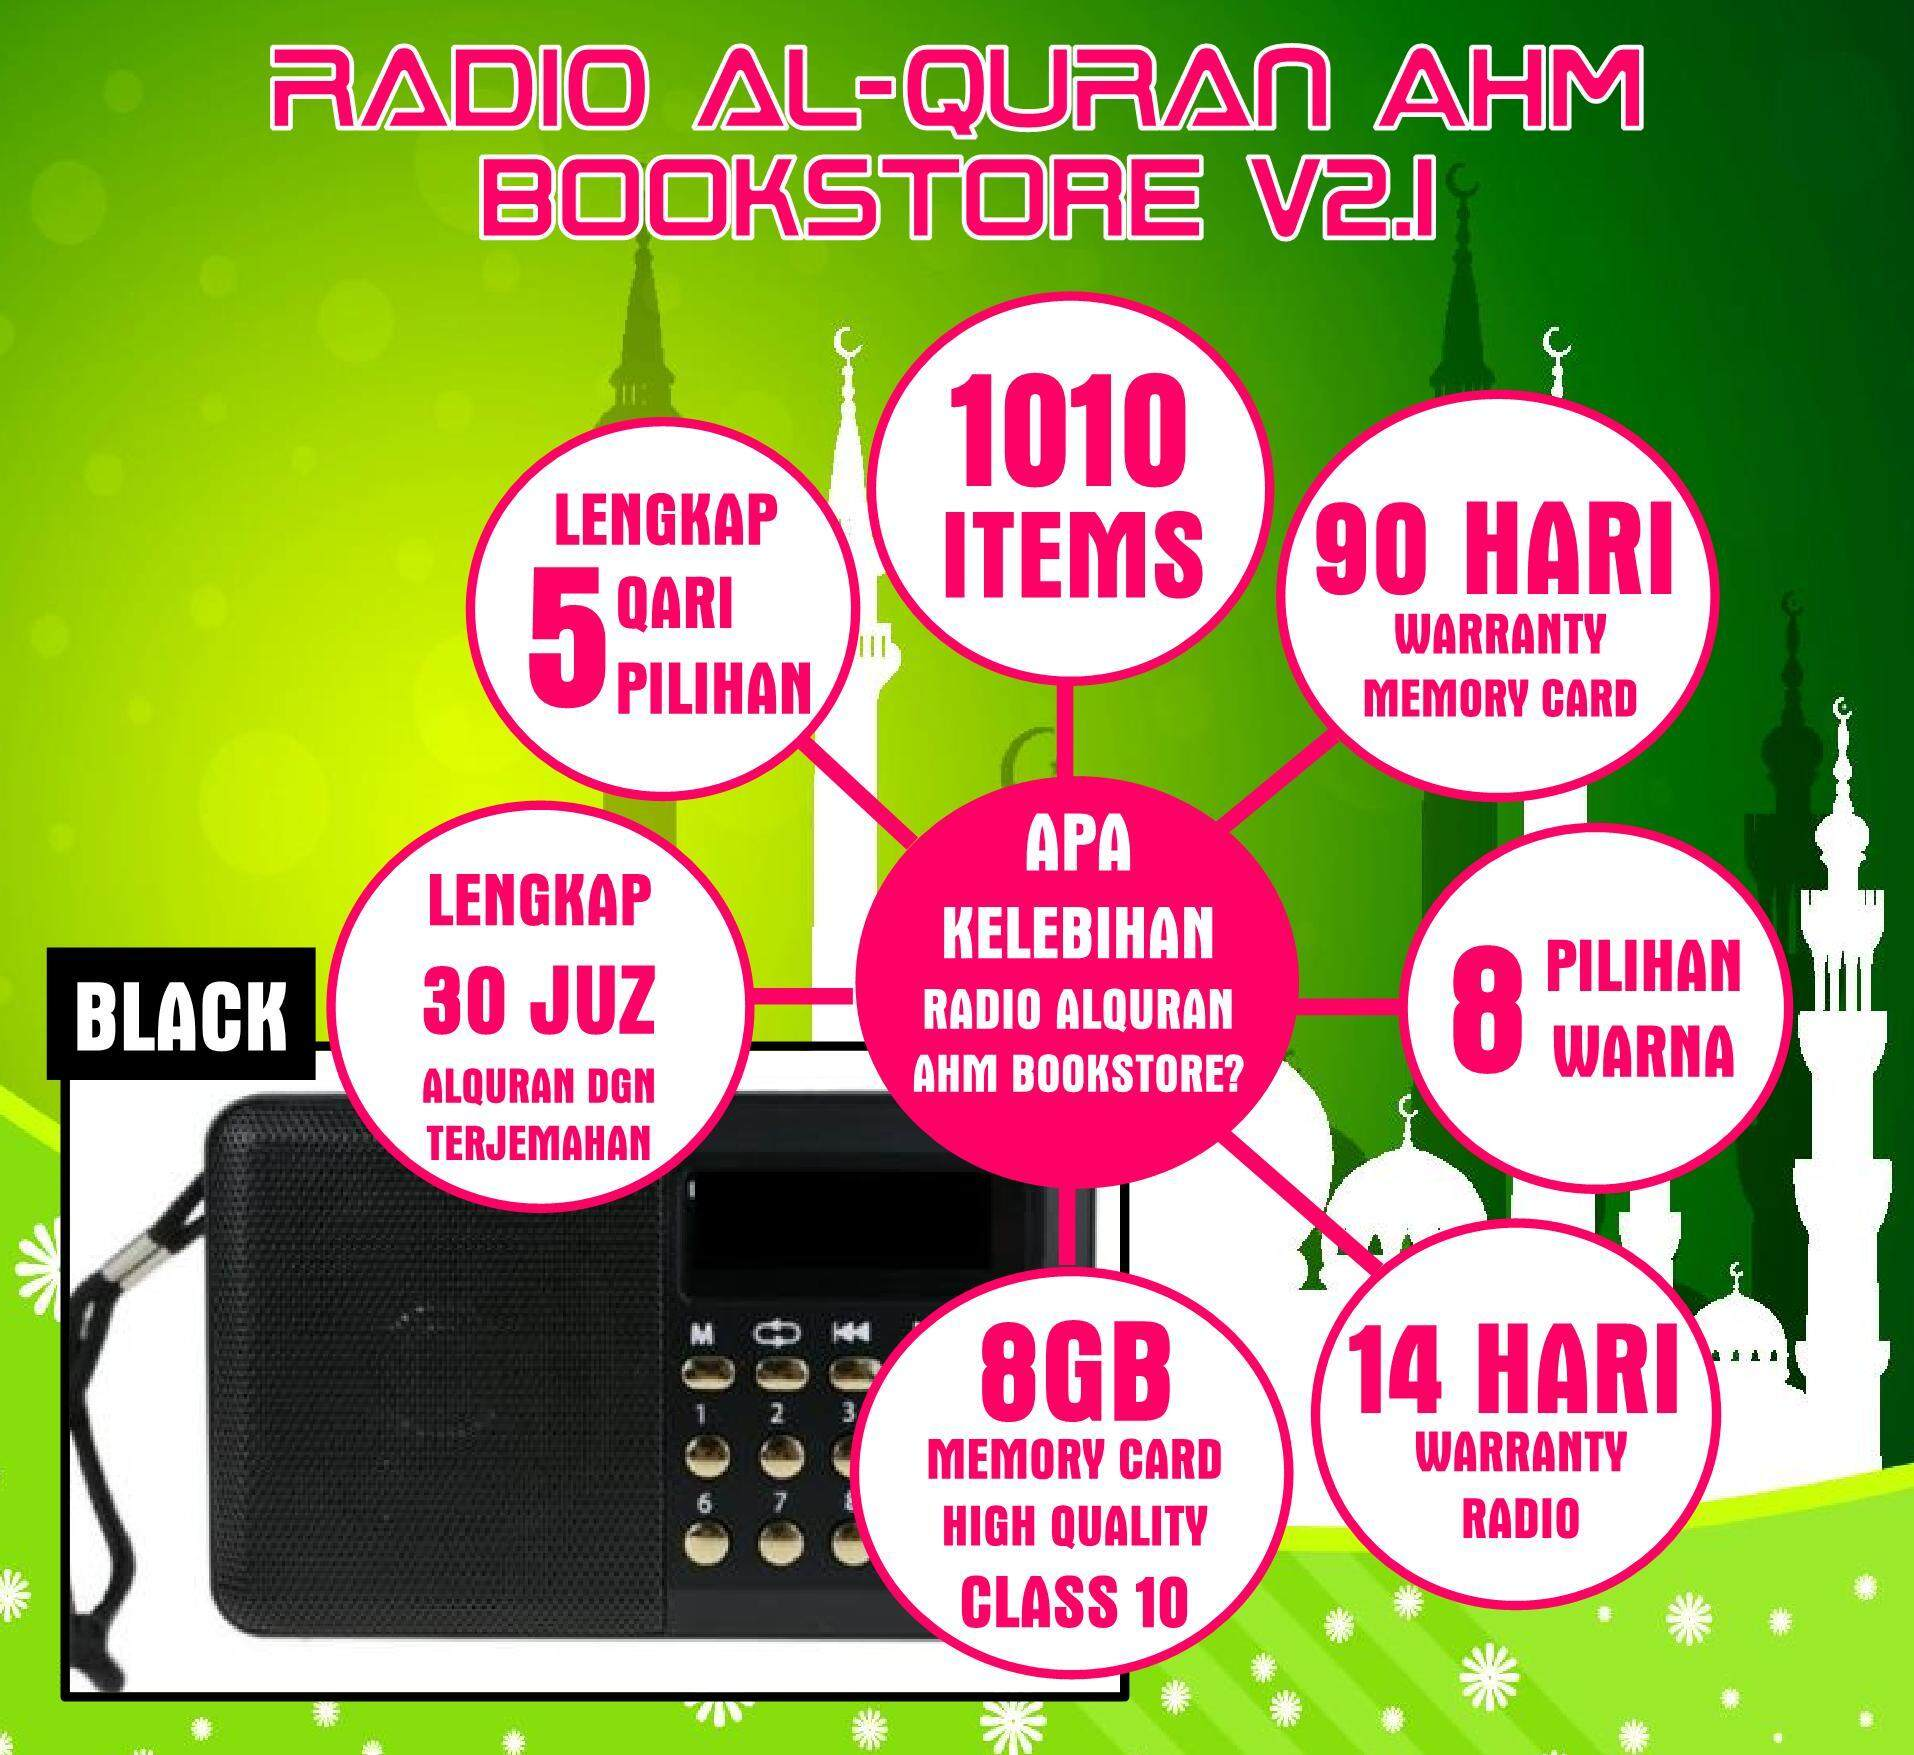 Radio Al Quran Al-Quran Complete 30 Juz With 5 Qari Option + Original 8gb Memory High Quality By Ahm Bookstore.